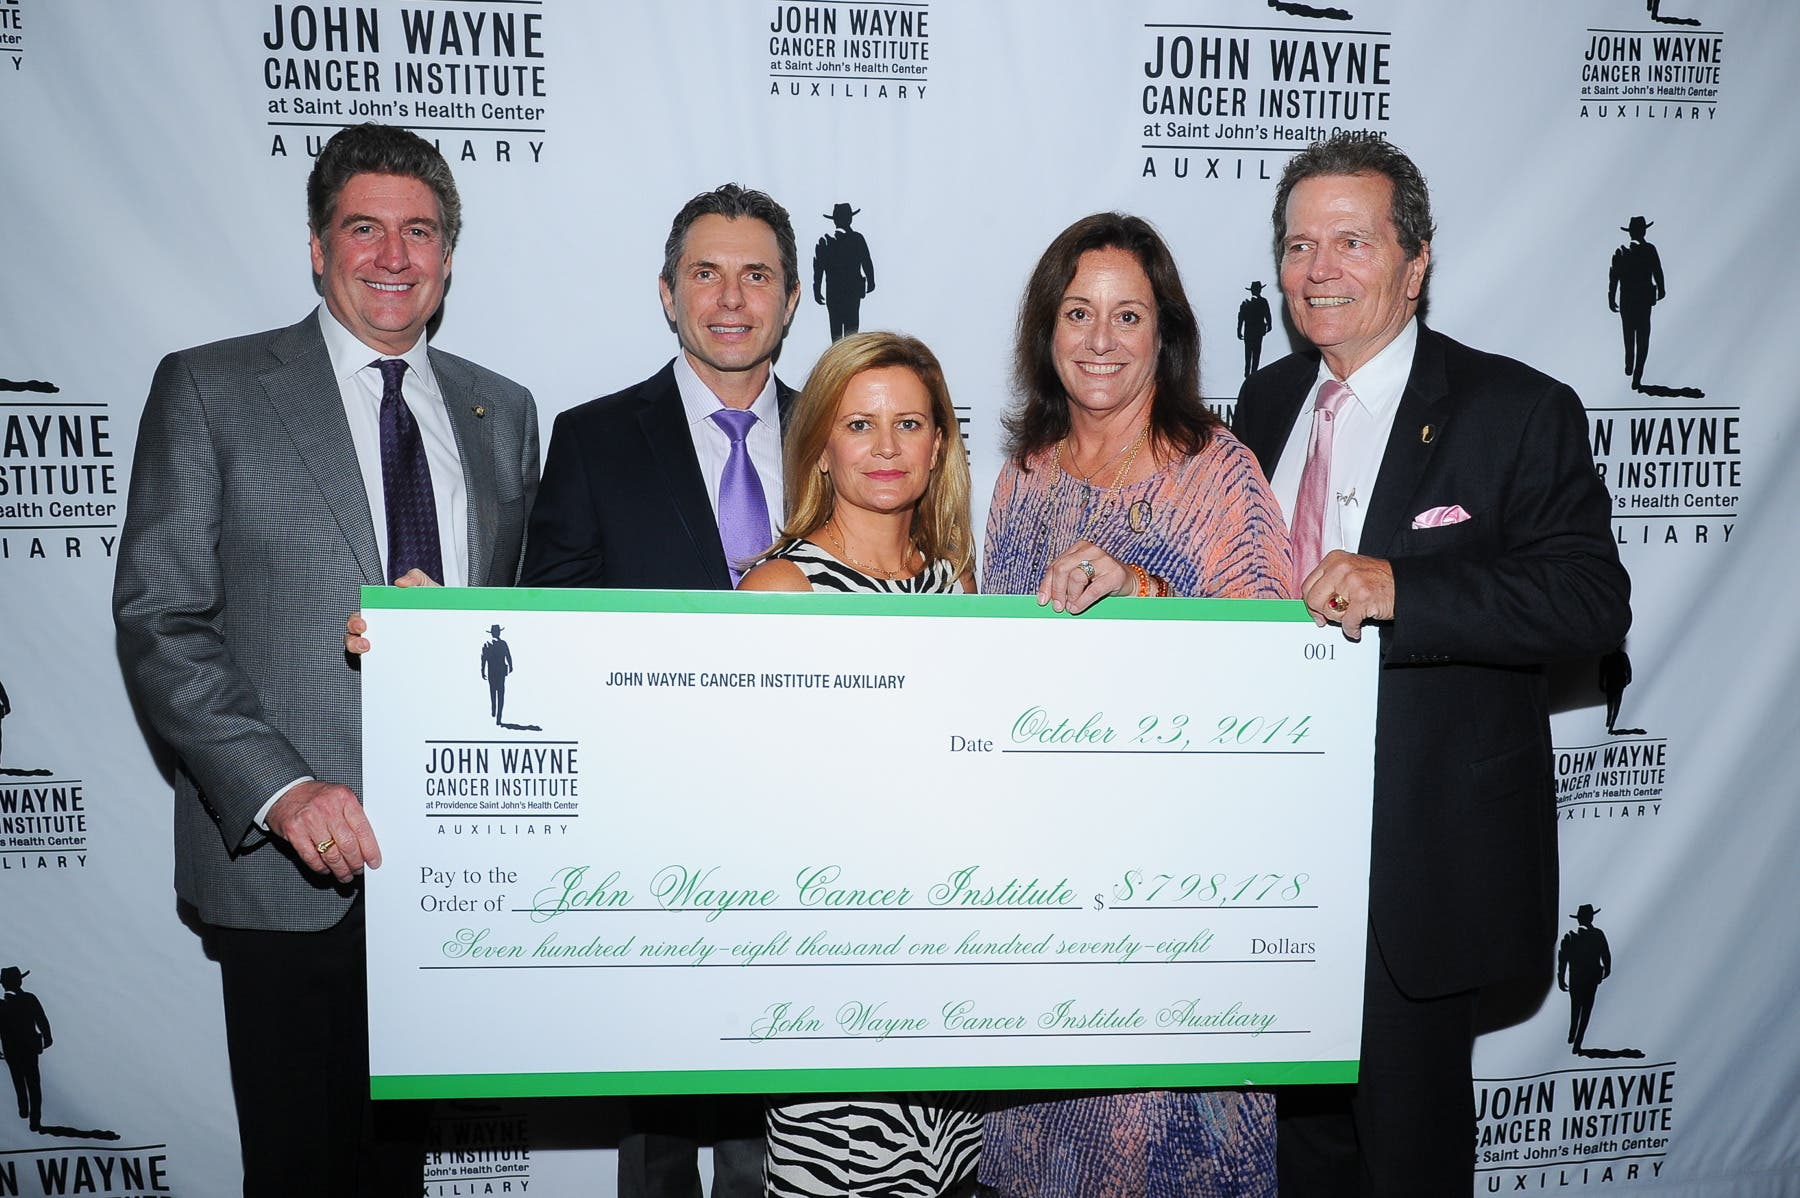 John Wayne Cancer Institute Auxiliary Hosts Annual